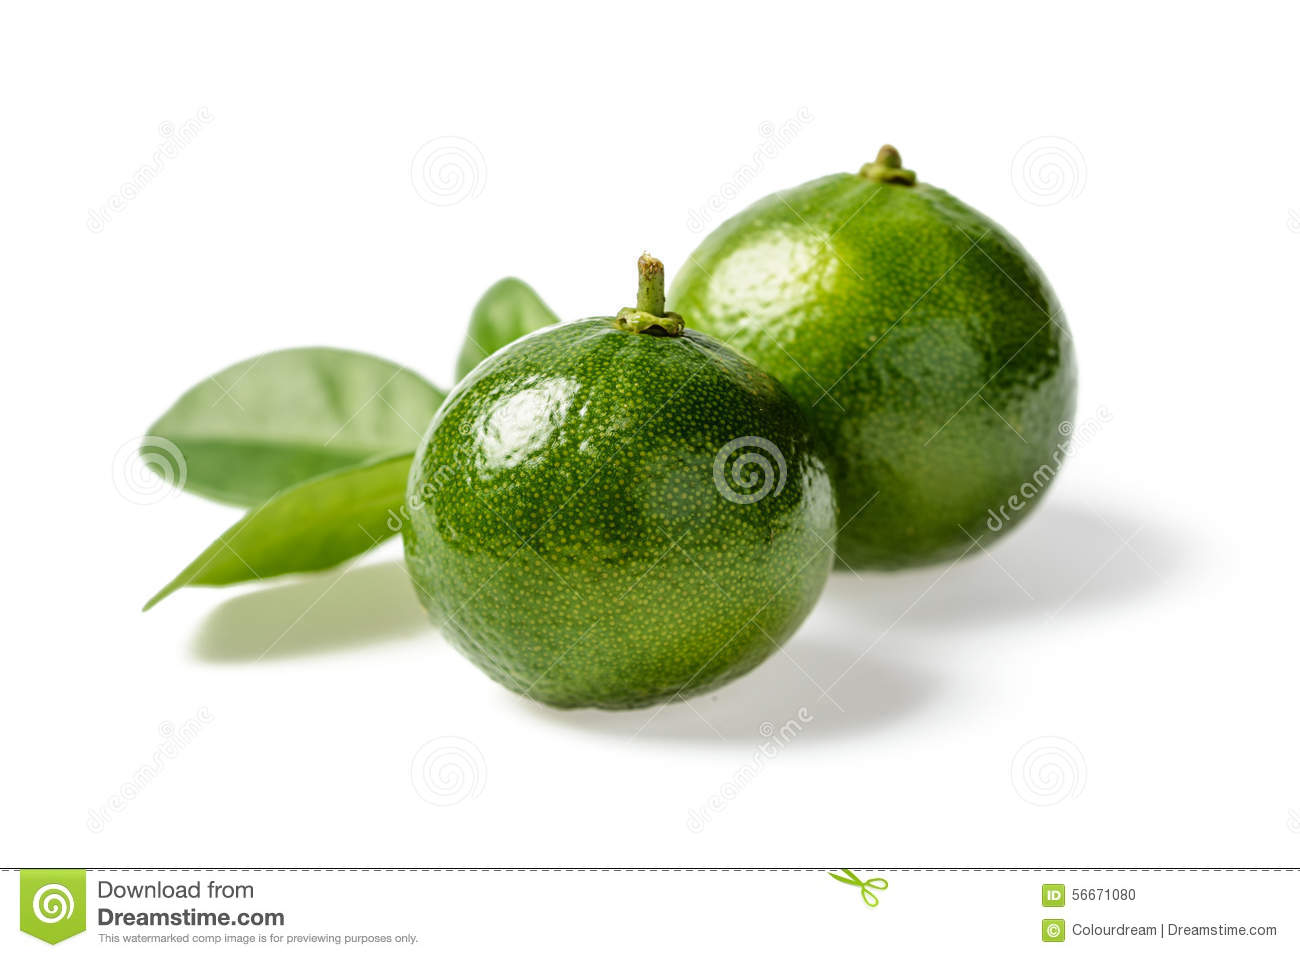 Small Green Lime Stock Photo  Image 56671080. Kitchen Organization Tools. Pictures Of Country Kitchens. Kitchen Cabinets Organizers. Country Kitchen Donuts. Black & White Kitchen Accessories. Modern Kitchen Sinks. Buy Modern Kitchen Cabinets Online. Country Kitchens Cabinets